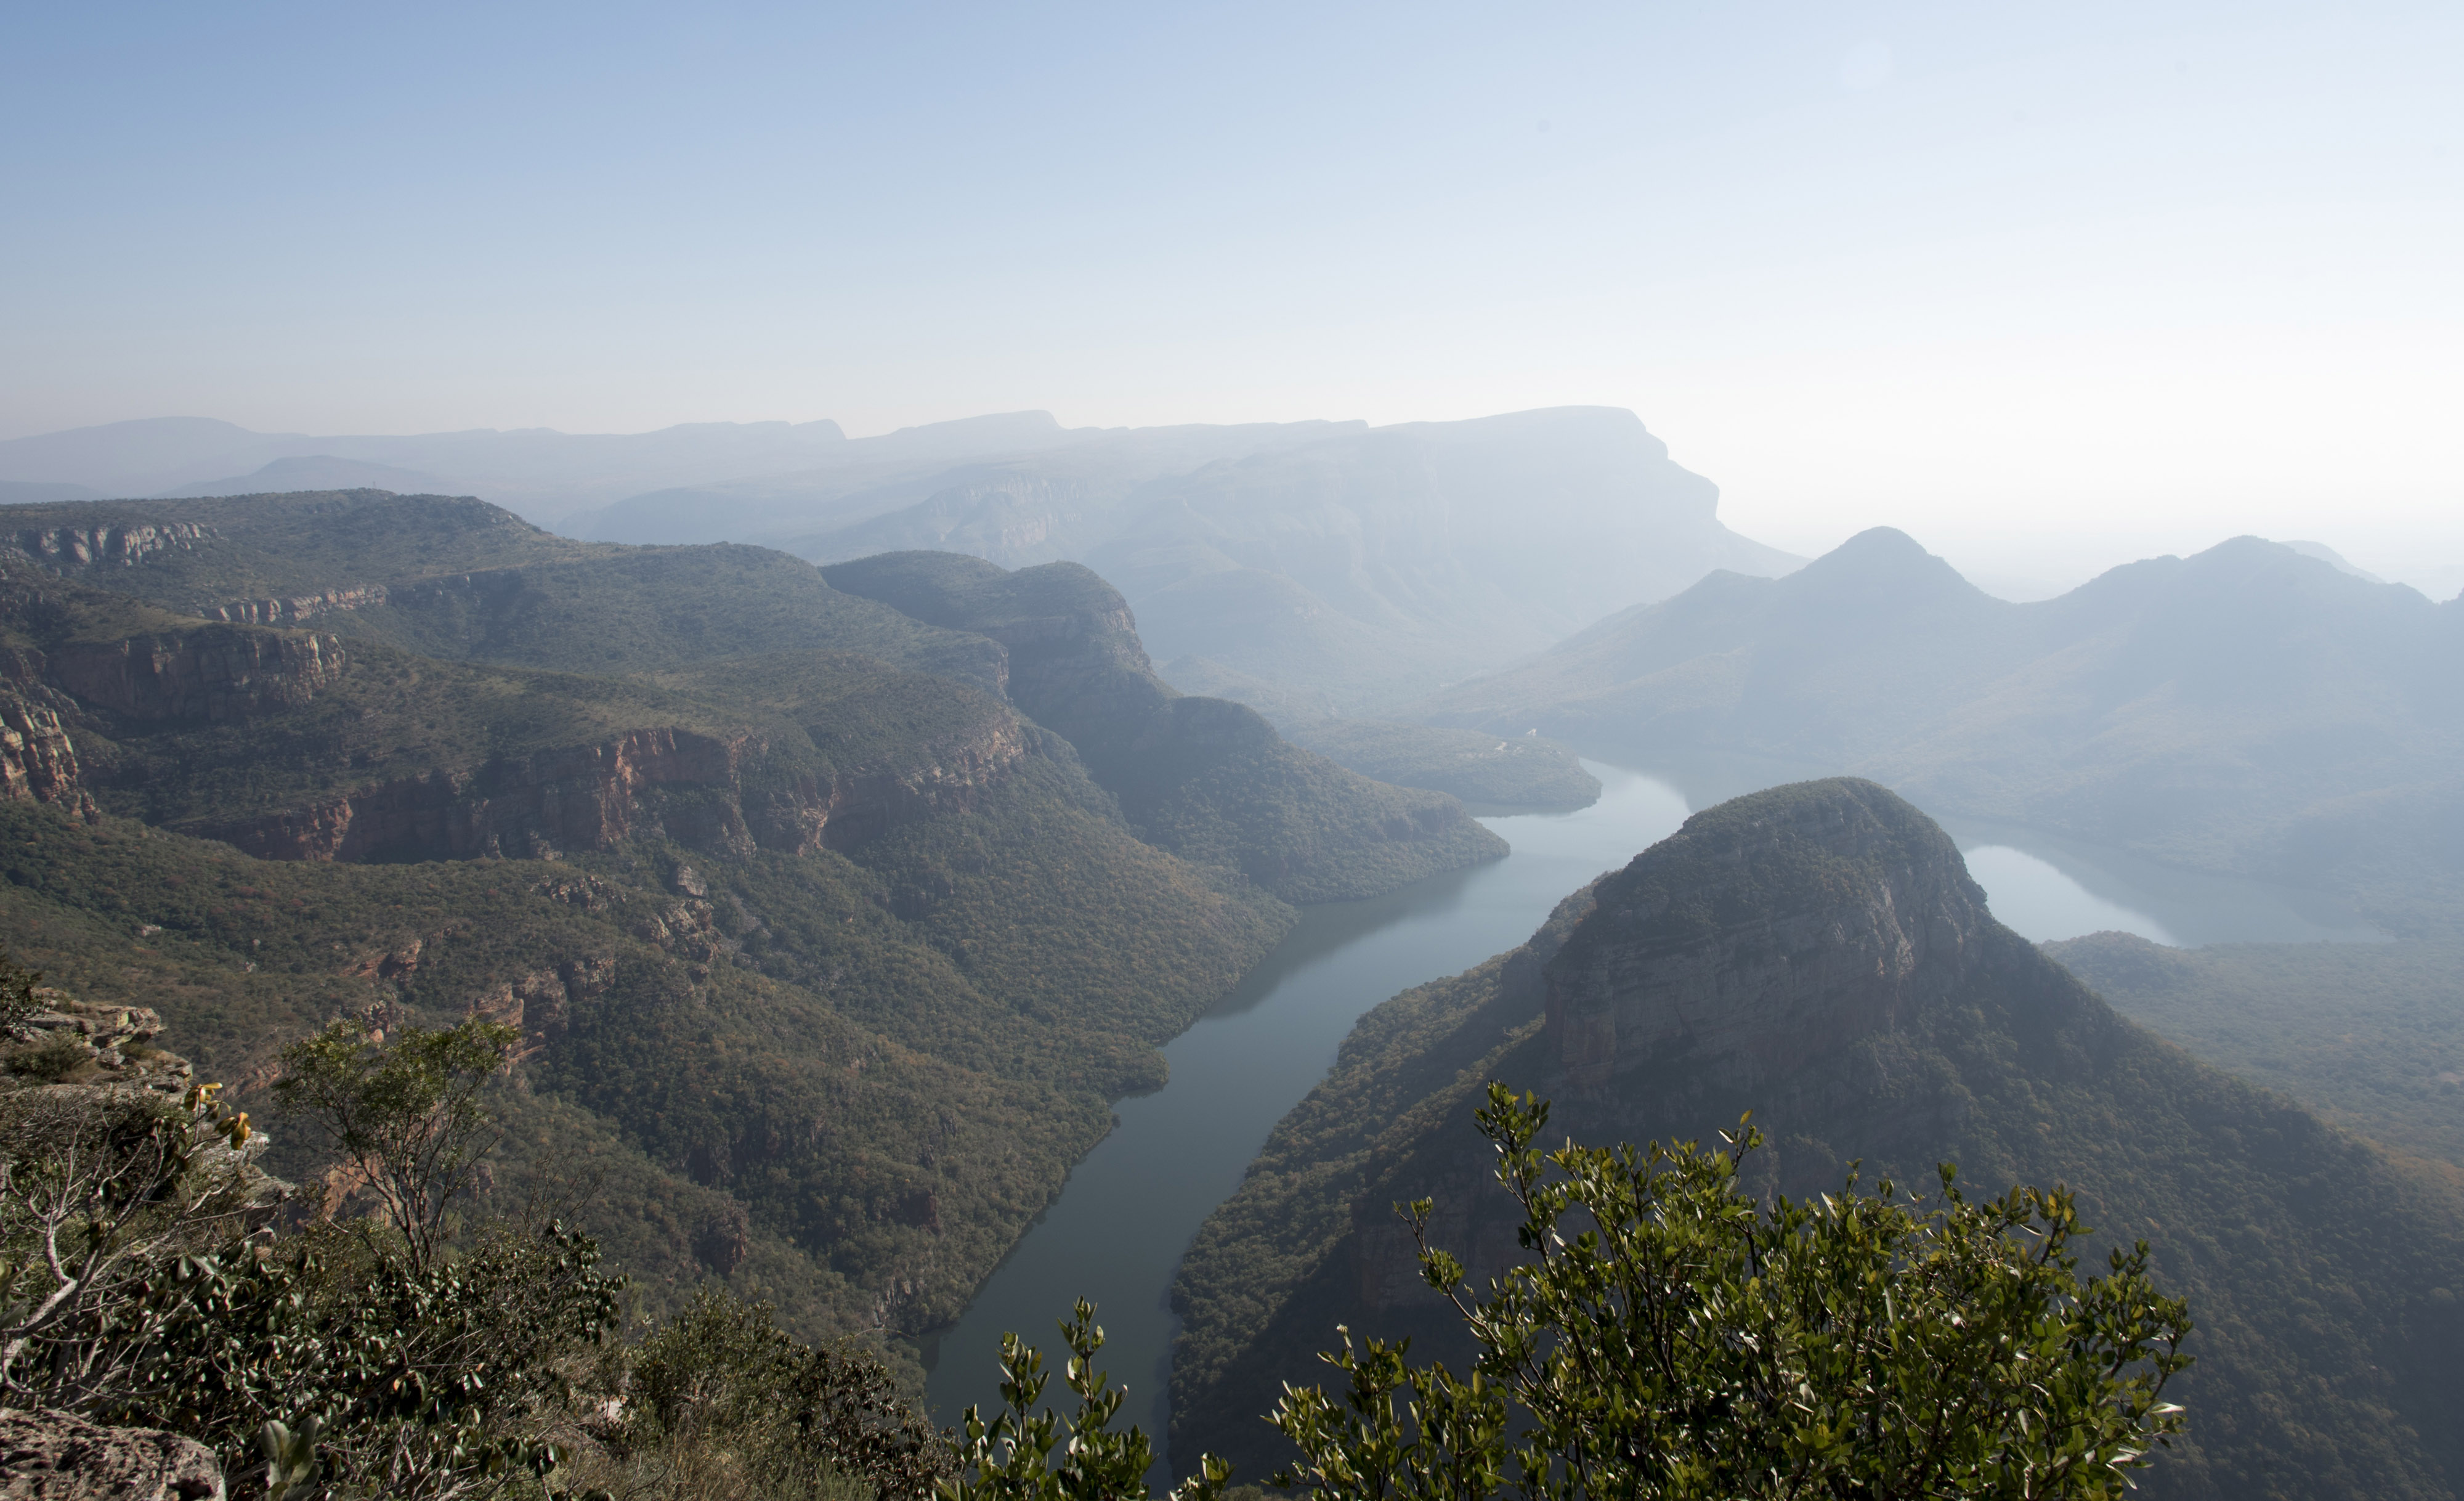 Blyde River Canyon, South Africa - Elin Jonsson